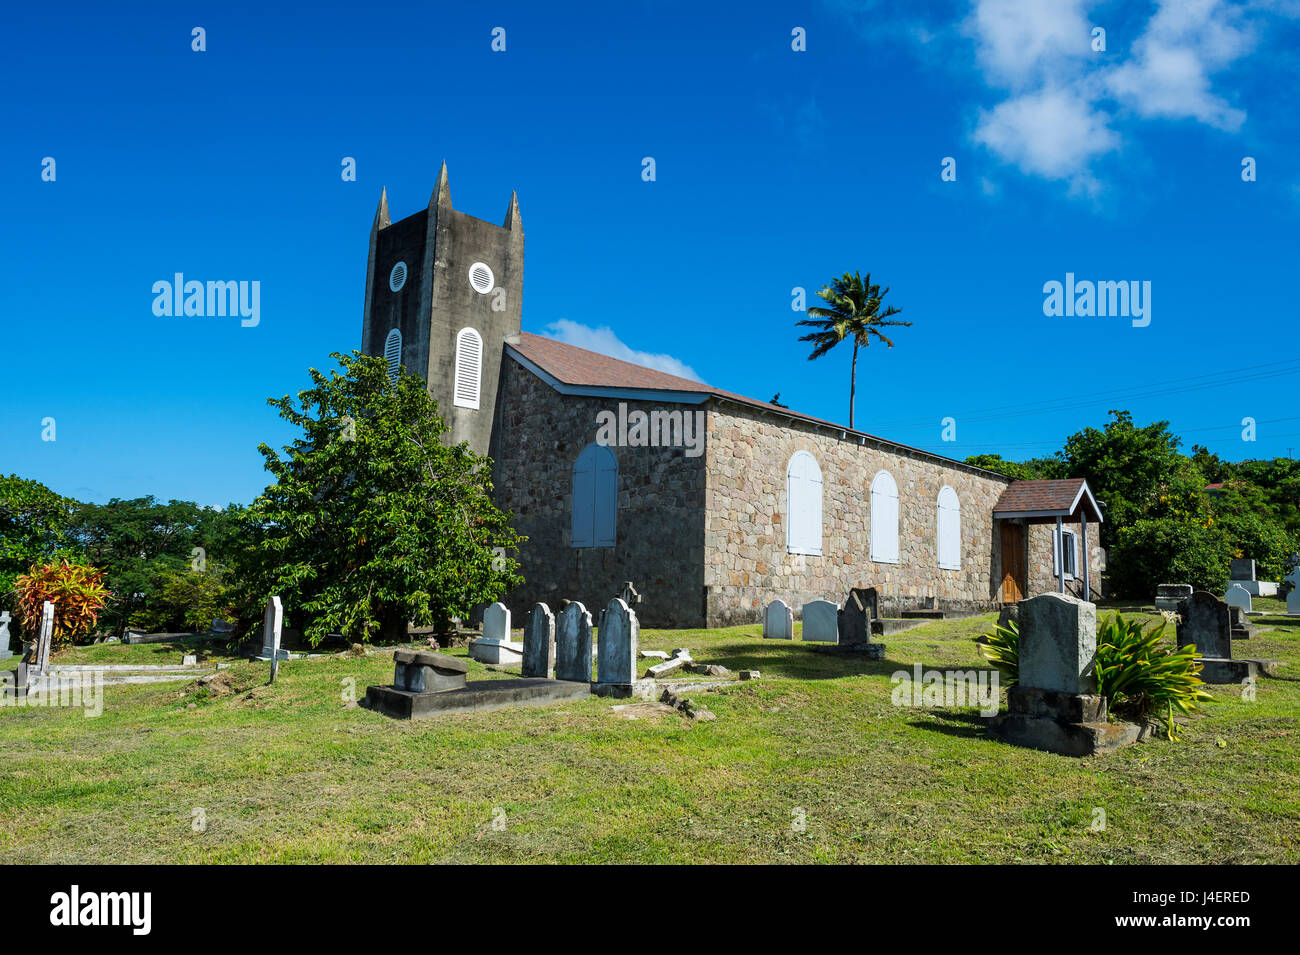 St. Peter's Anglican church, Montserrat, British Overseas Territory, West Indies, Caribbean, Central America Stock Photo